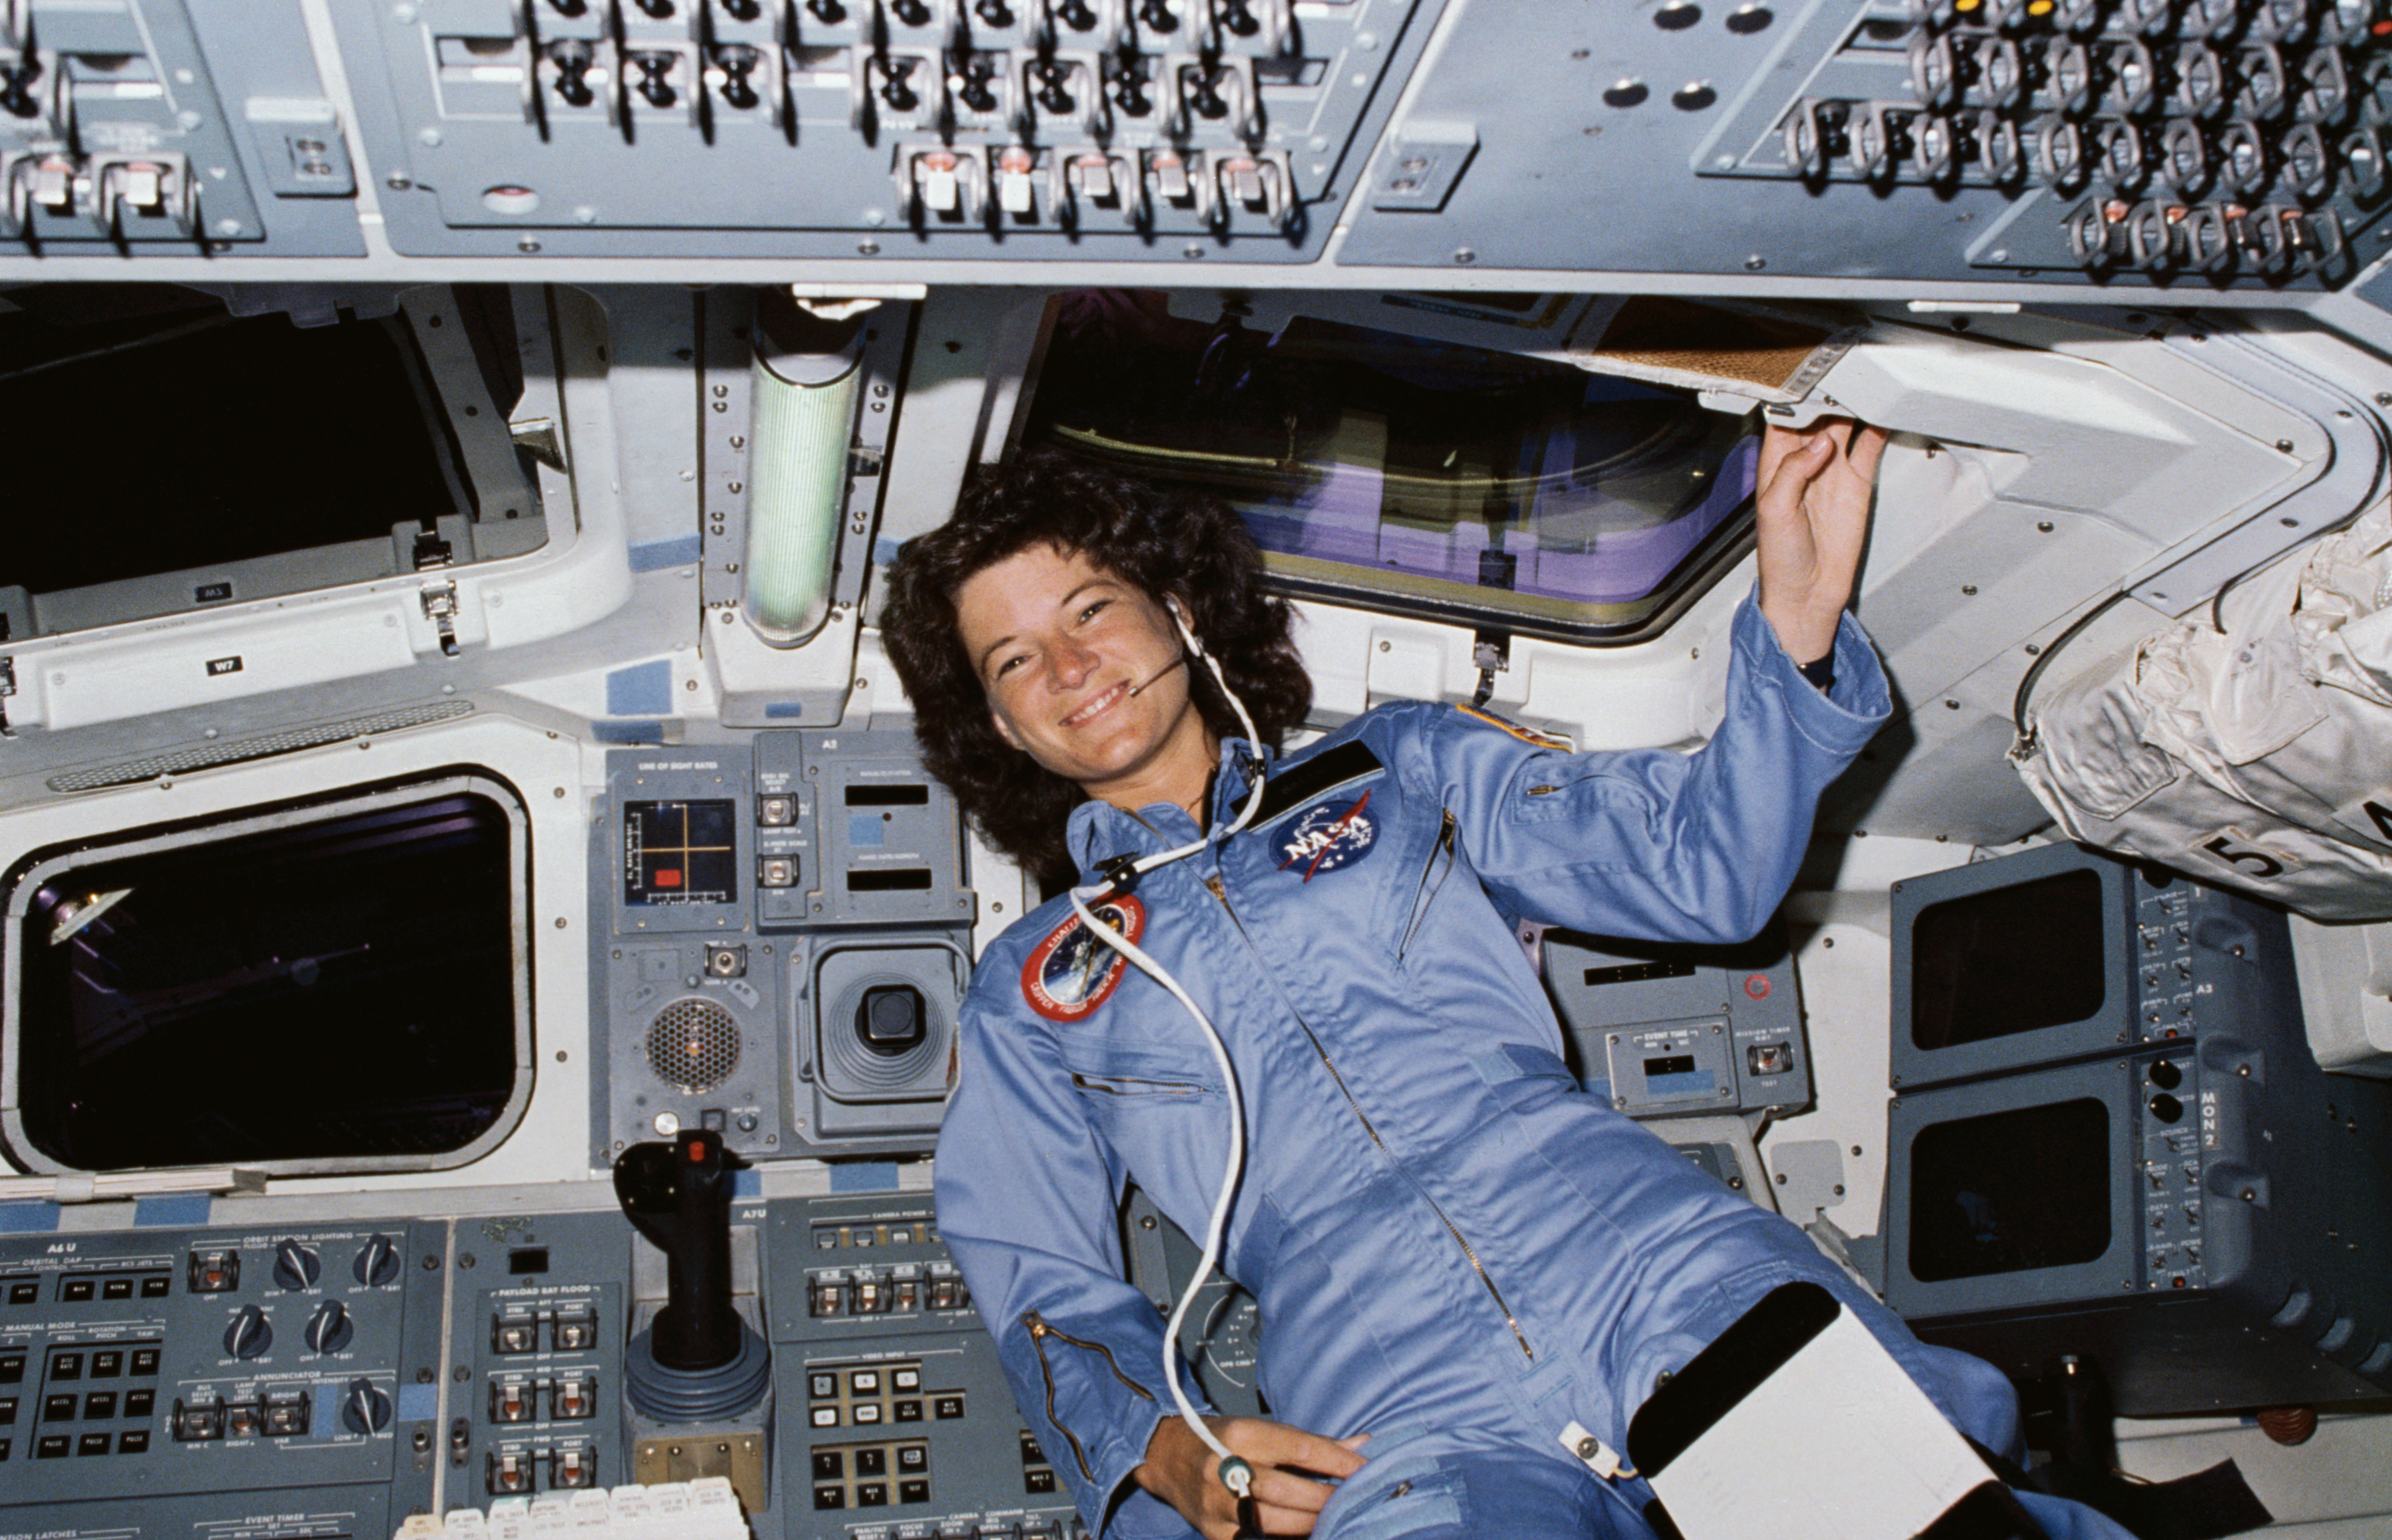 Space in Images - 2013 - 06 - Sally Ride